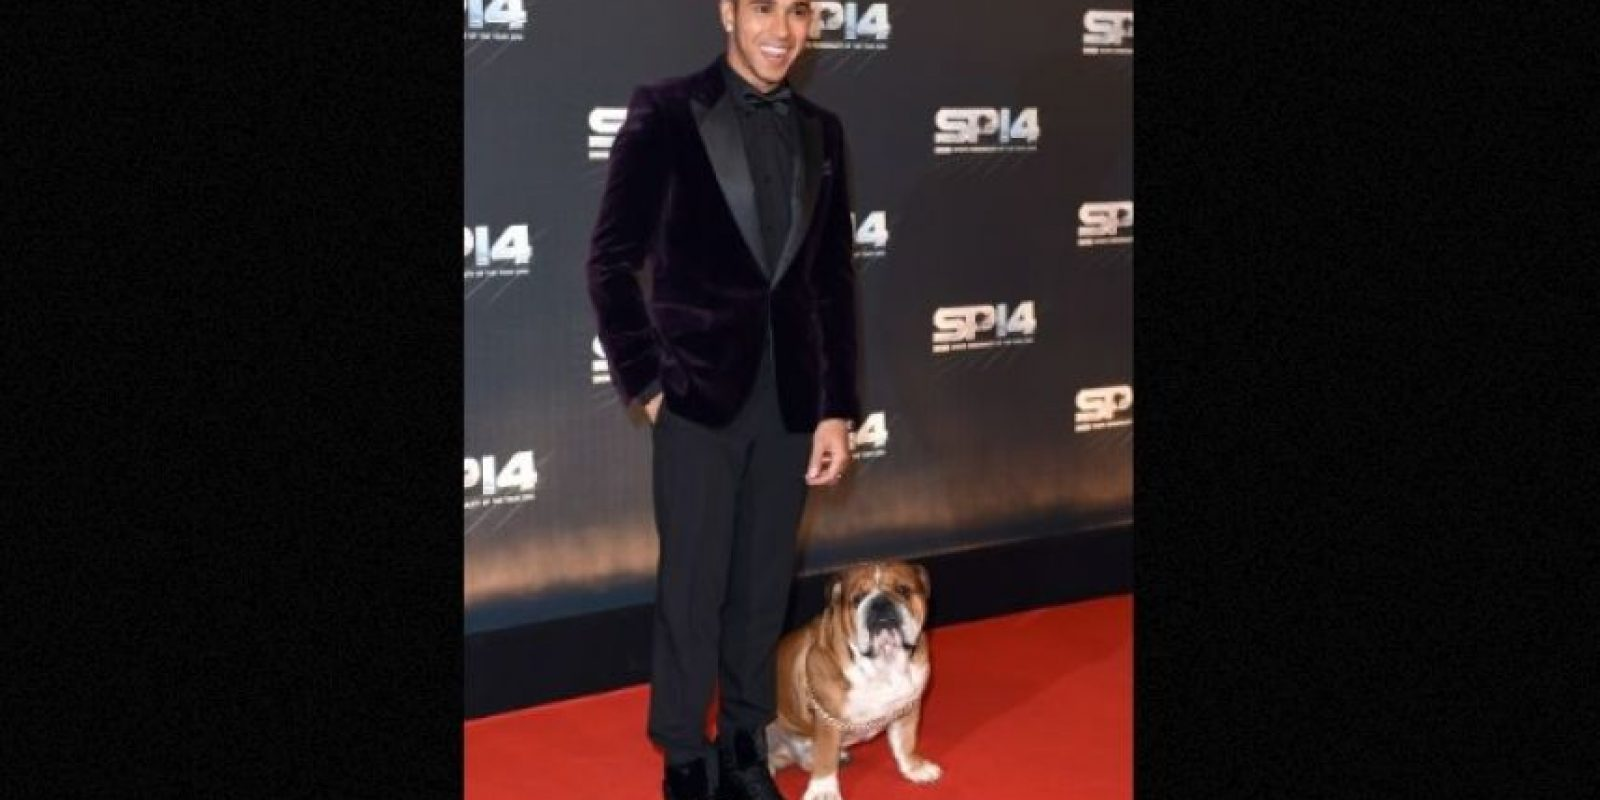 Lewis Hamilton Foto: Getty Images